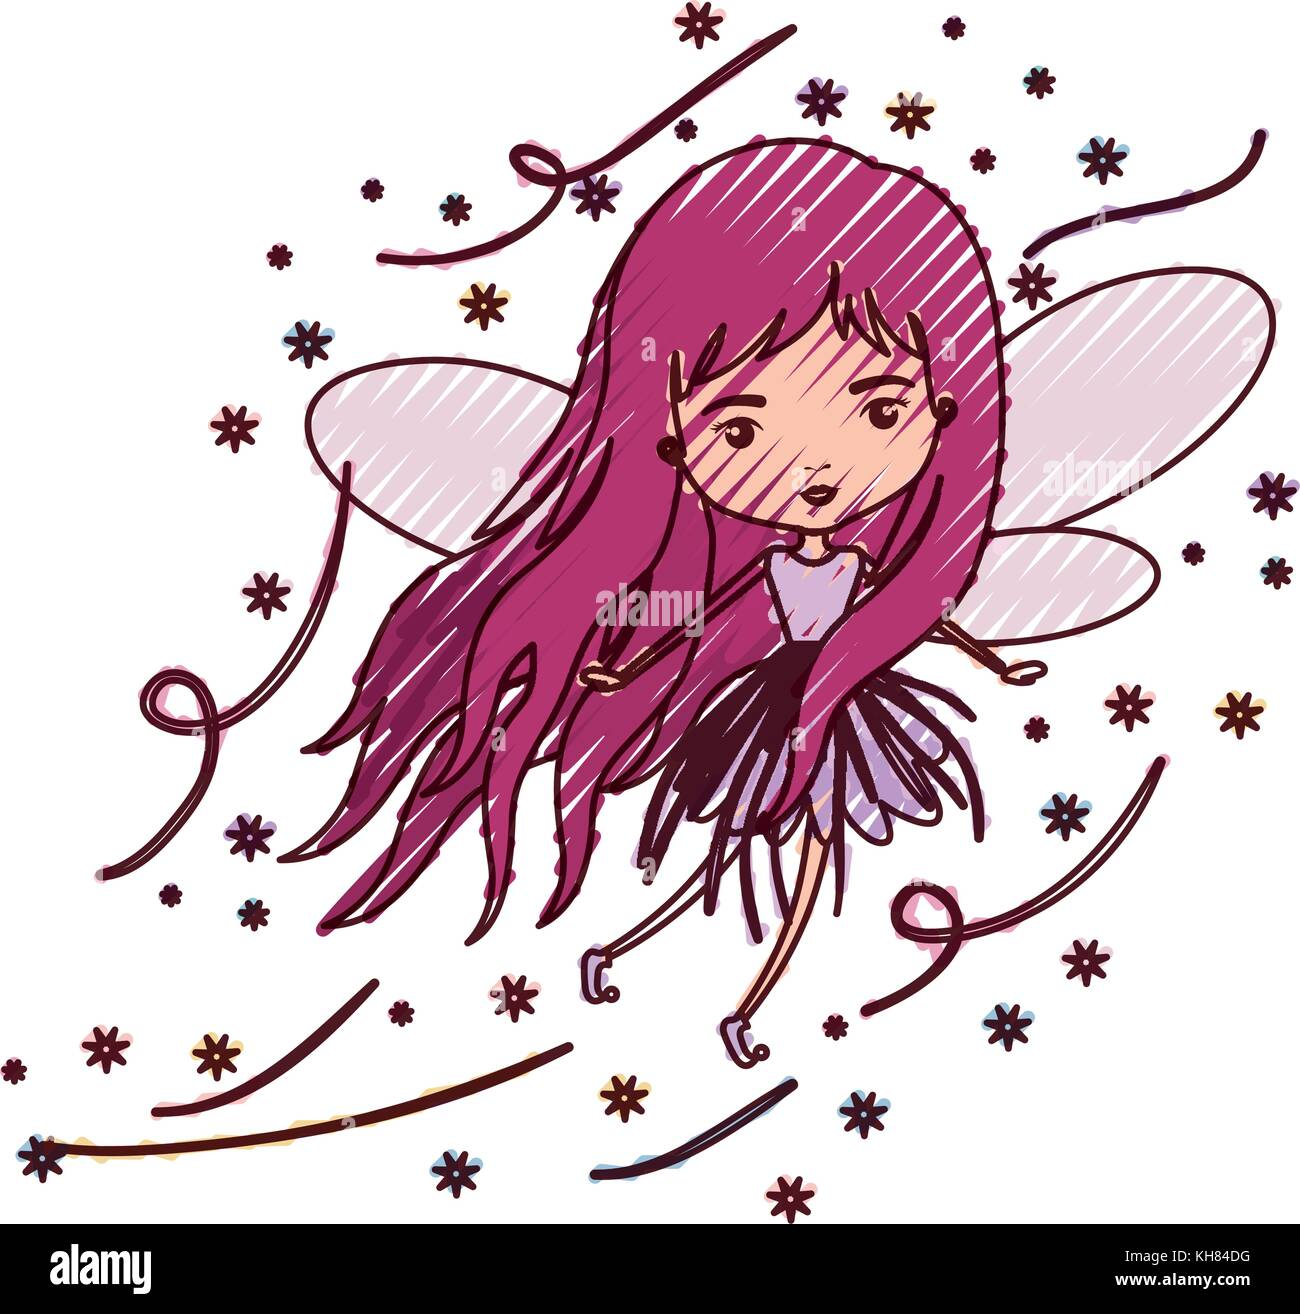 girly fairy flying with wings and long hair in colored crayon silhouette - Stock Image